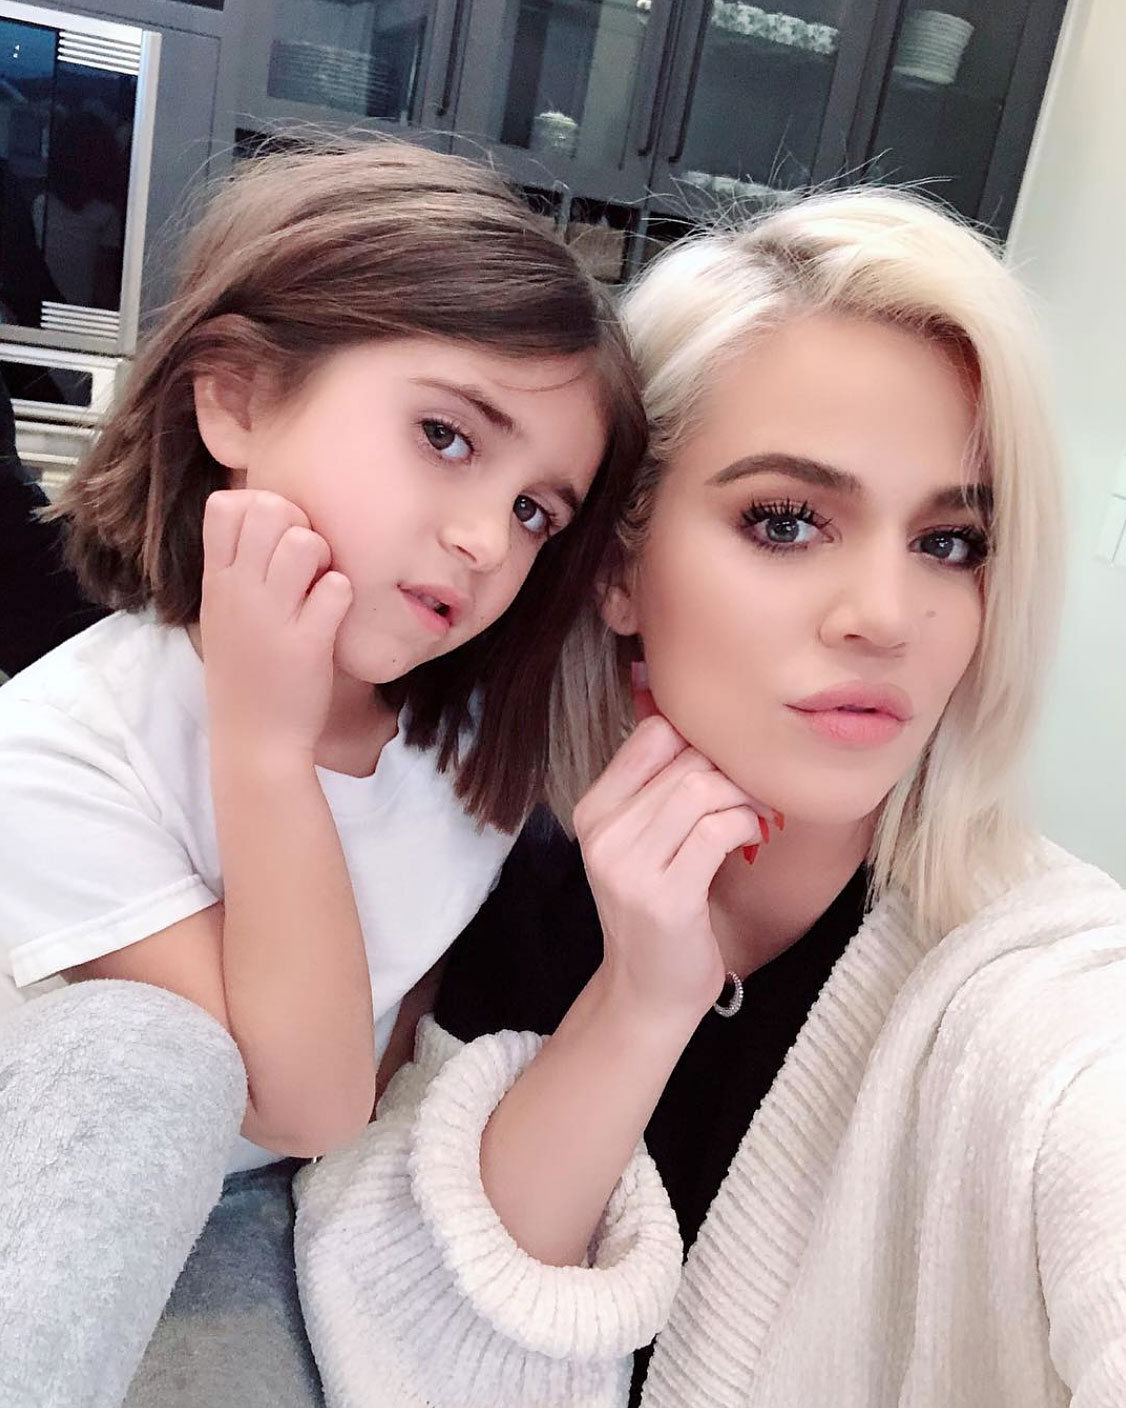 Penelope-Disick-Got-Her-First-Haircut,-and-She's-Twinning-with-Aunt-Khloe-Kardashian-2 - Penelope Disick and Khloe Kardashian